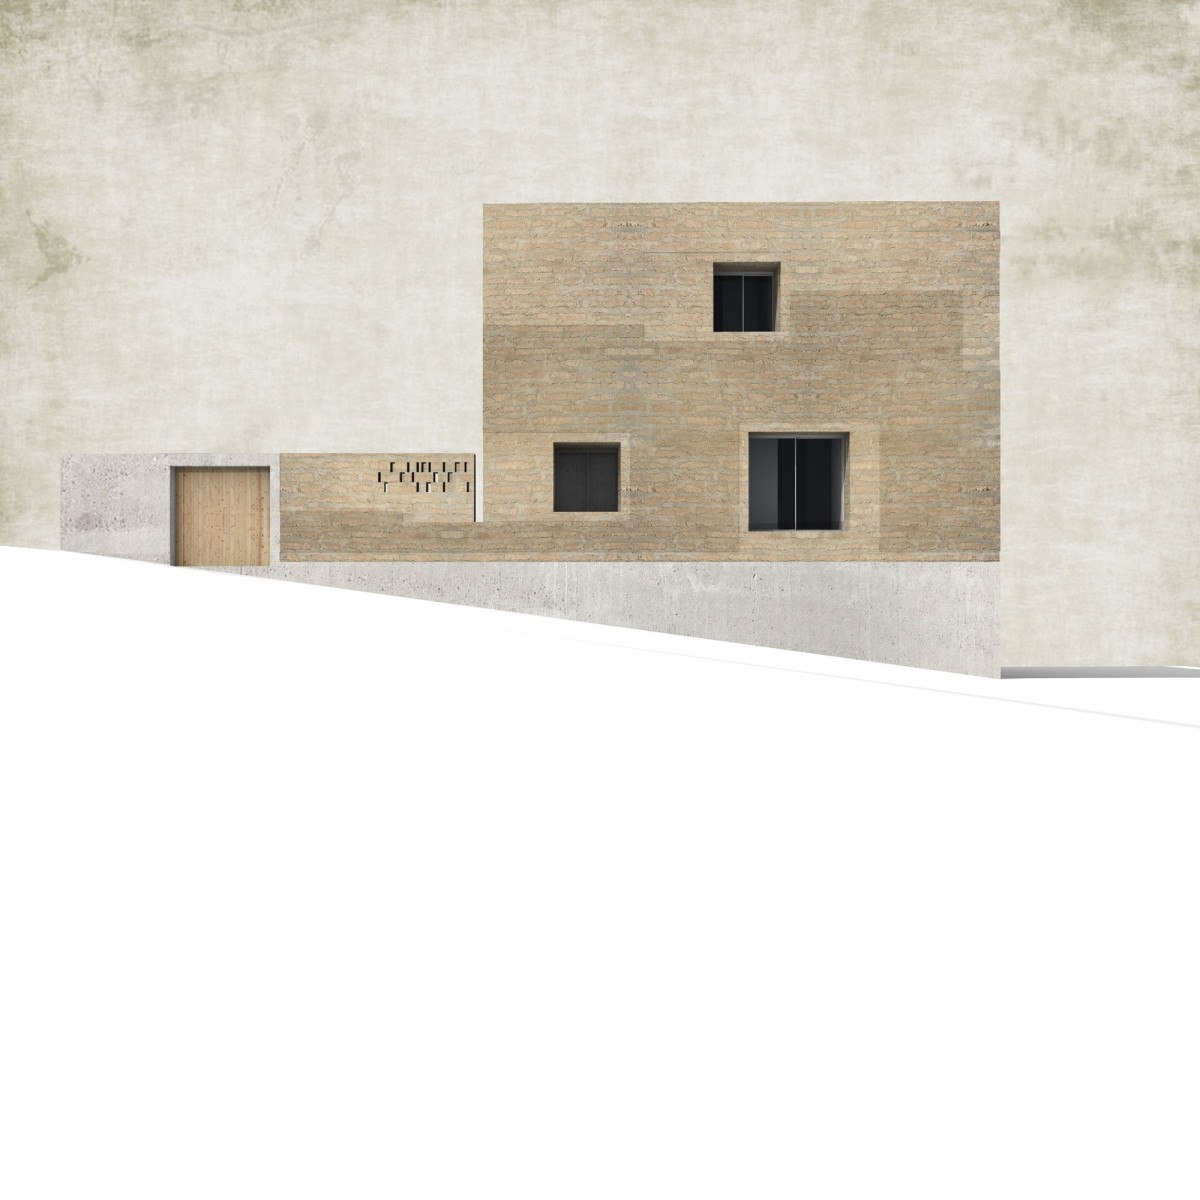 TEd'A arquitectes-can jordi africa-49-300ppp